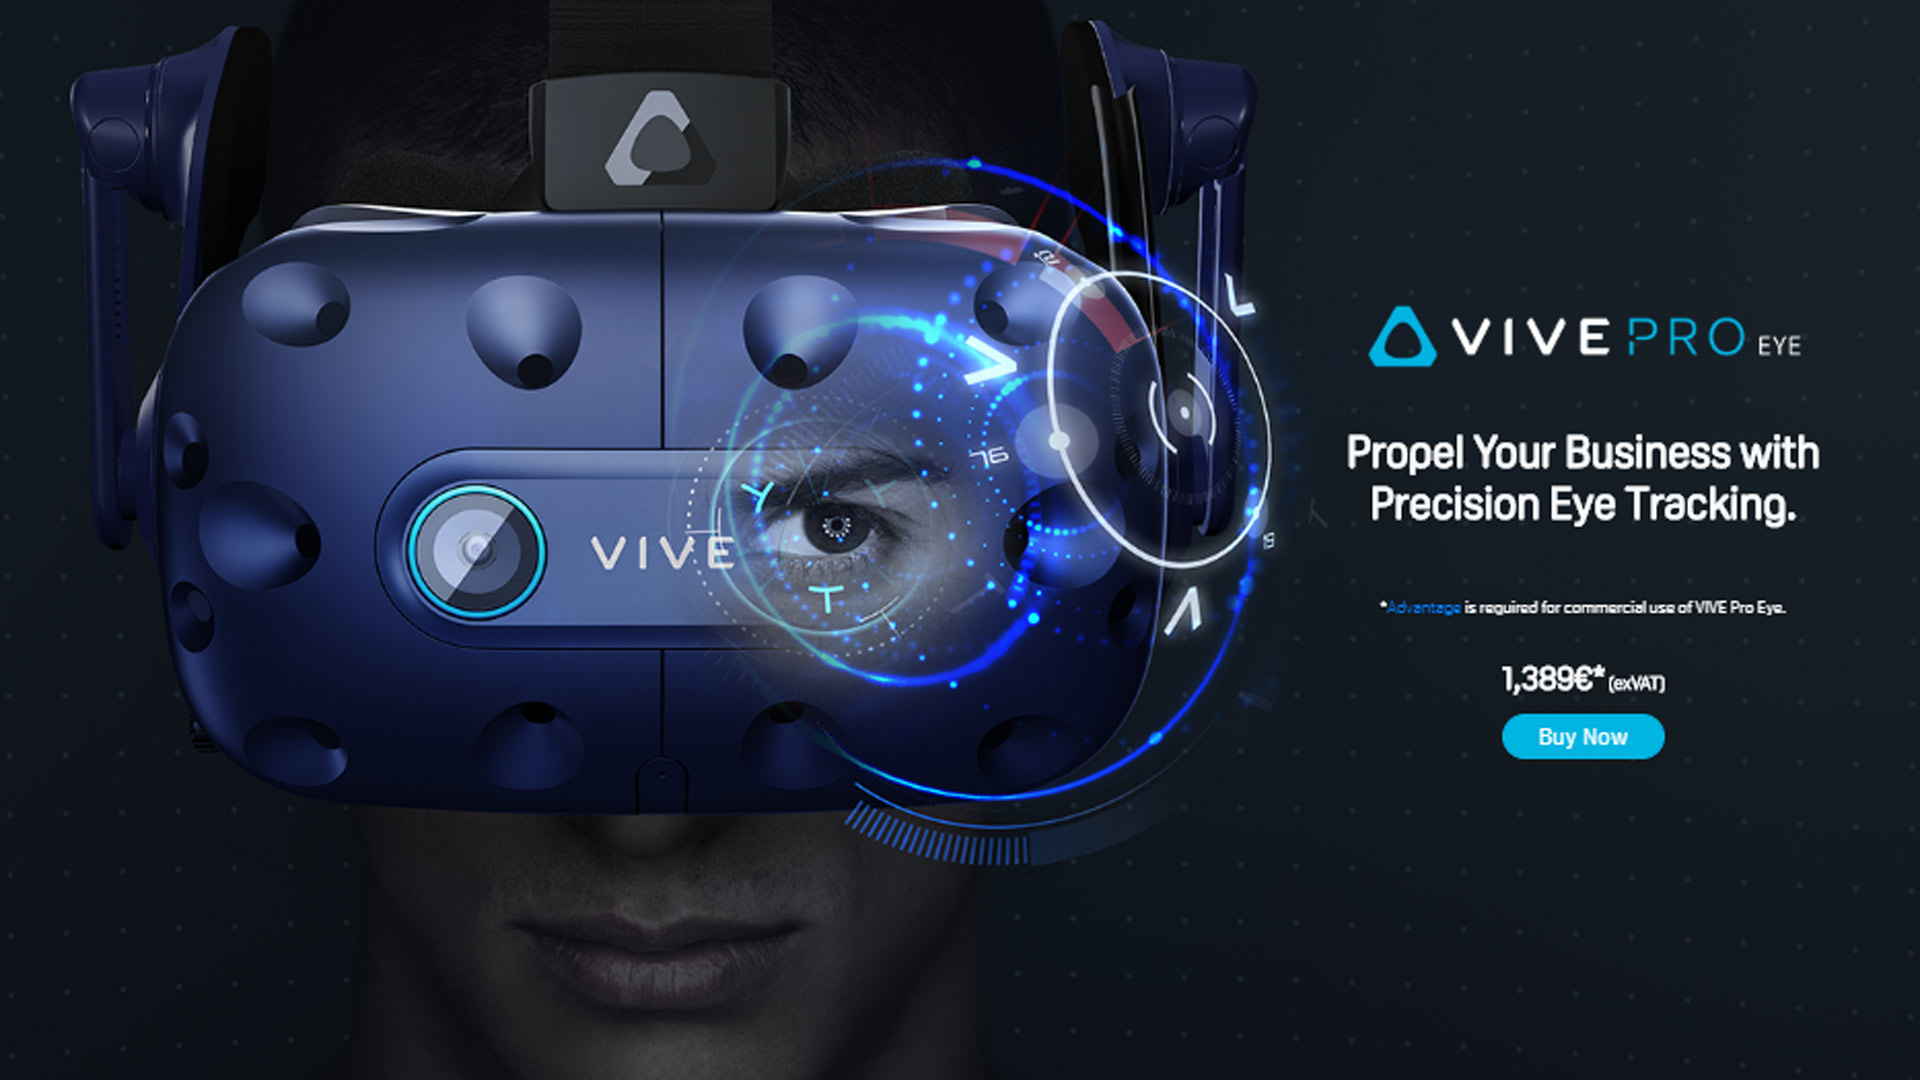 Vive Pro Eye Now Available in Europe, Starting at €1,700